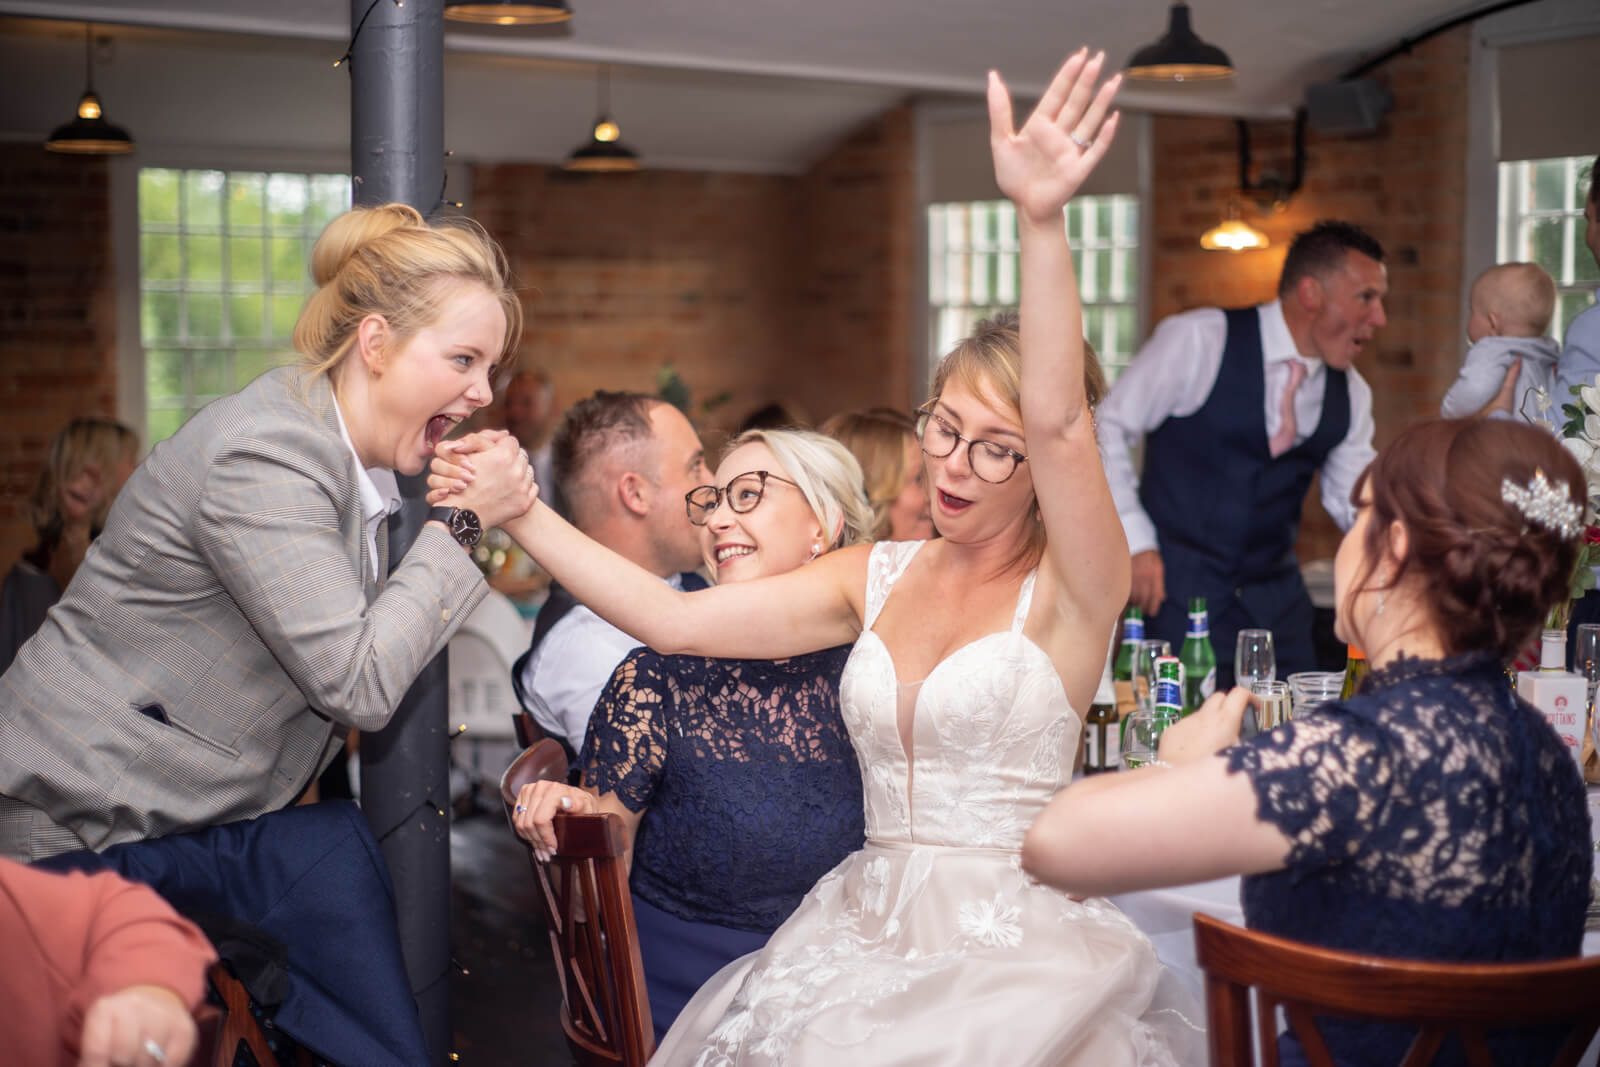 Bride and her friends sing together during the wedding breakfast